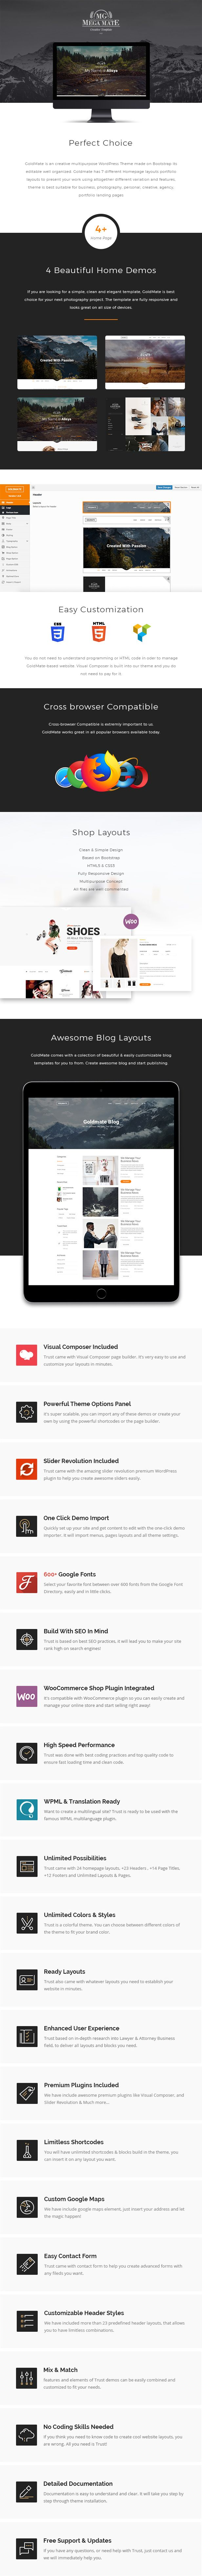 MEGAMATE is an creative multipurpose WordPress Theme made on Bootstrap its editable well organized. MegaMate has 4 different Homepage layouts portfolio layouts to present your work using altogether different variation and features, theme is best suitable for business, photography, personal, creative, agency, portfolio landing pages